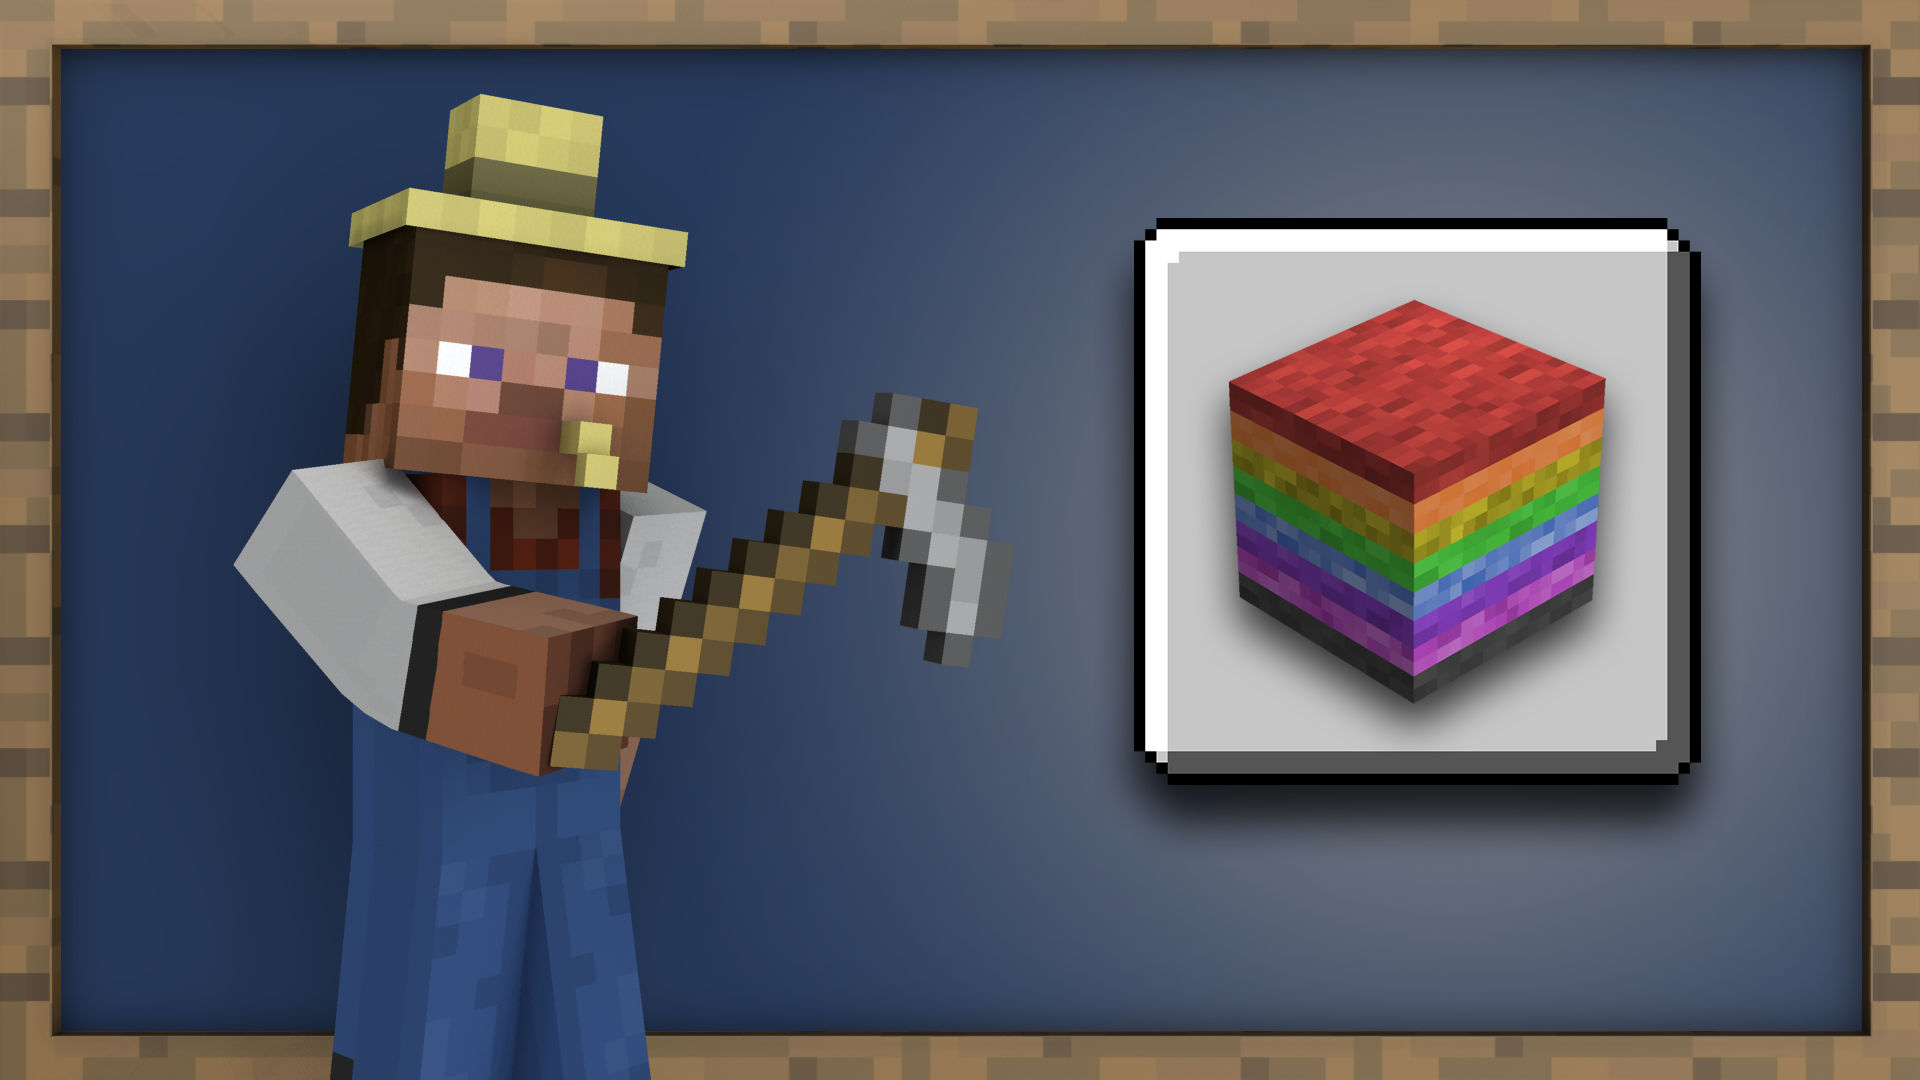 Rainbow Collection achievement for Minecraft on Nintendo Switch